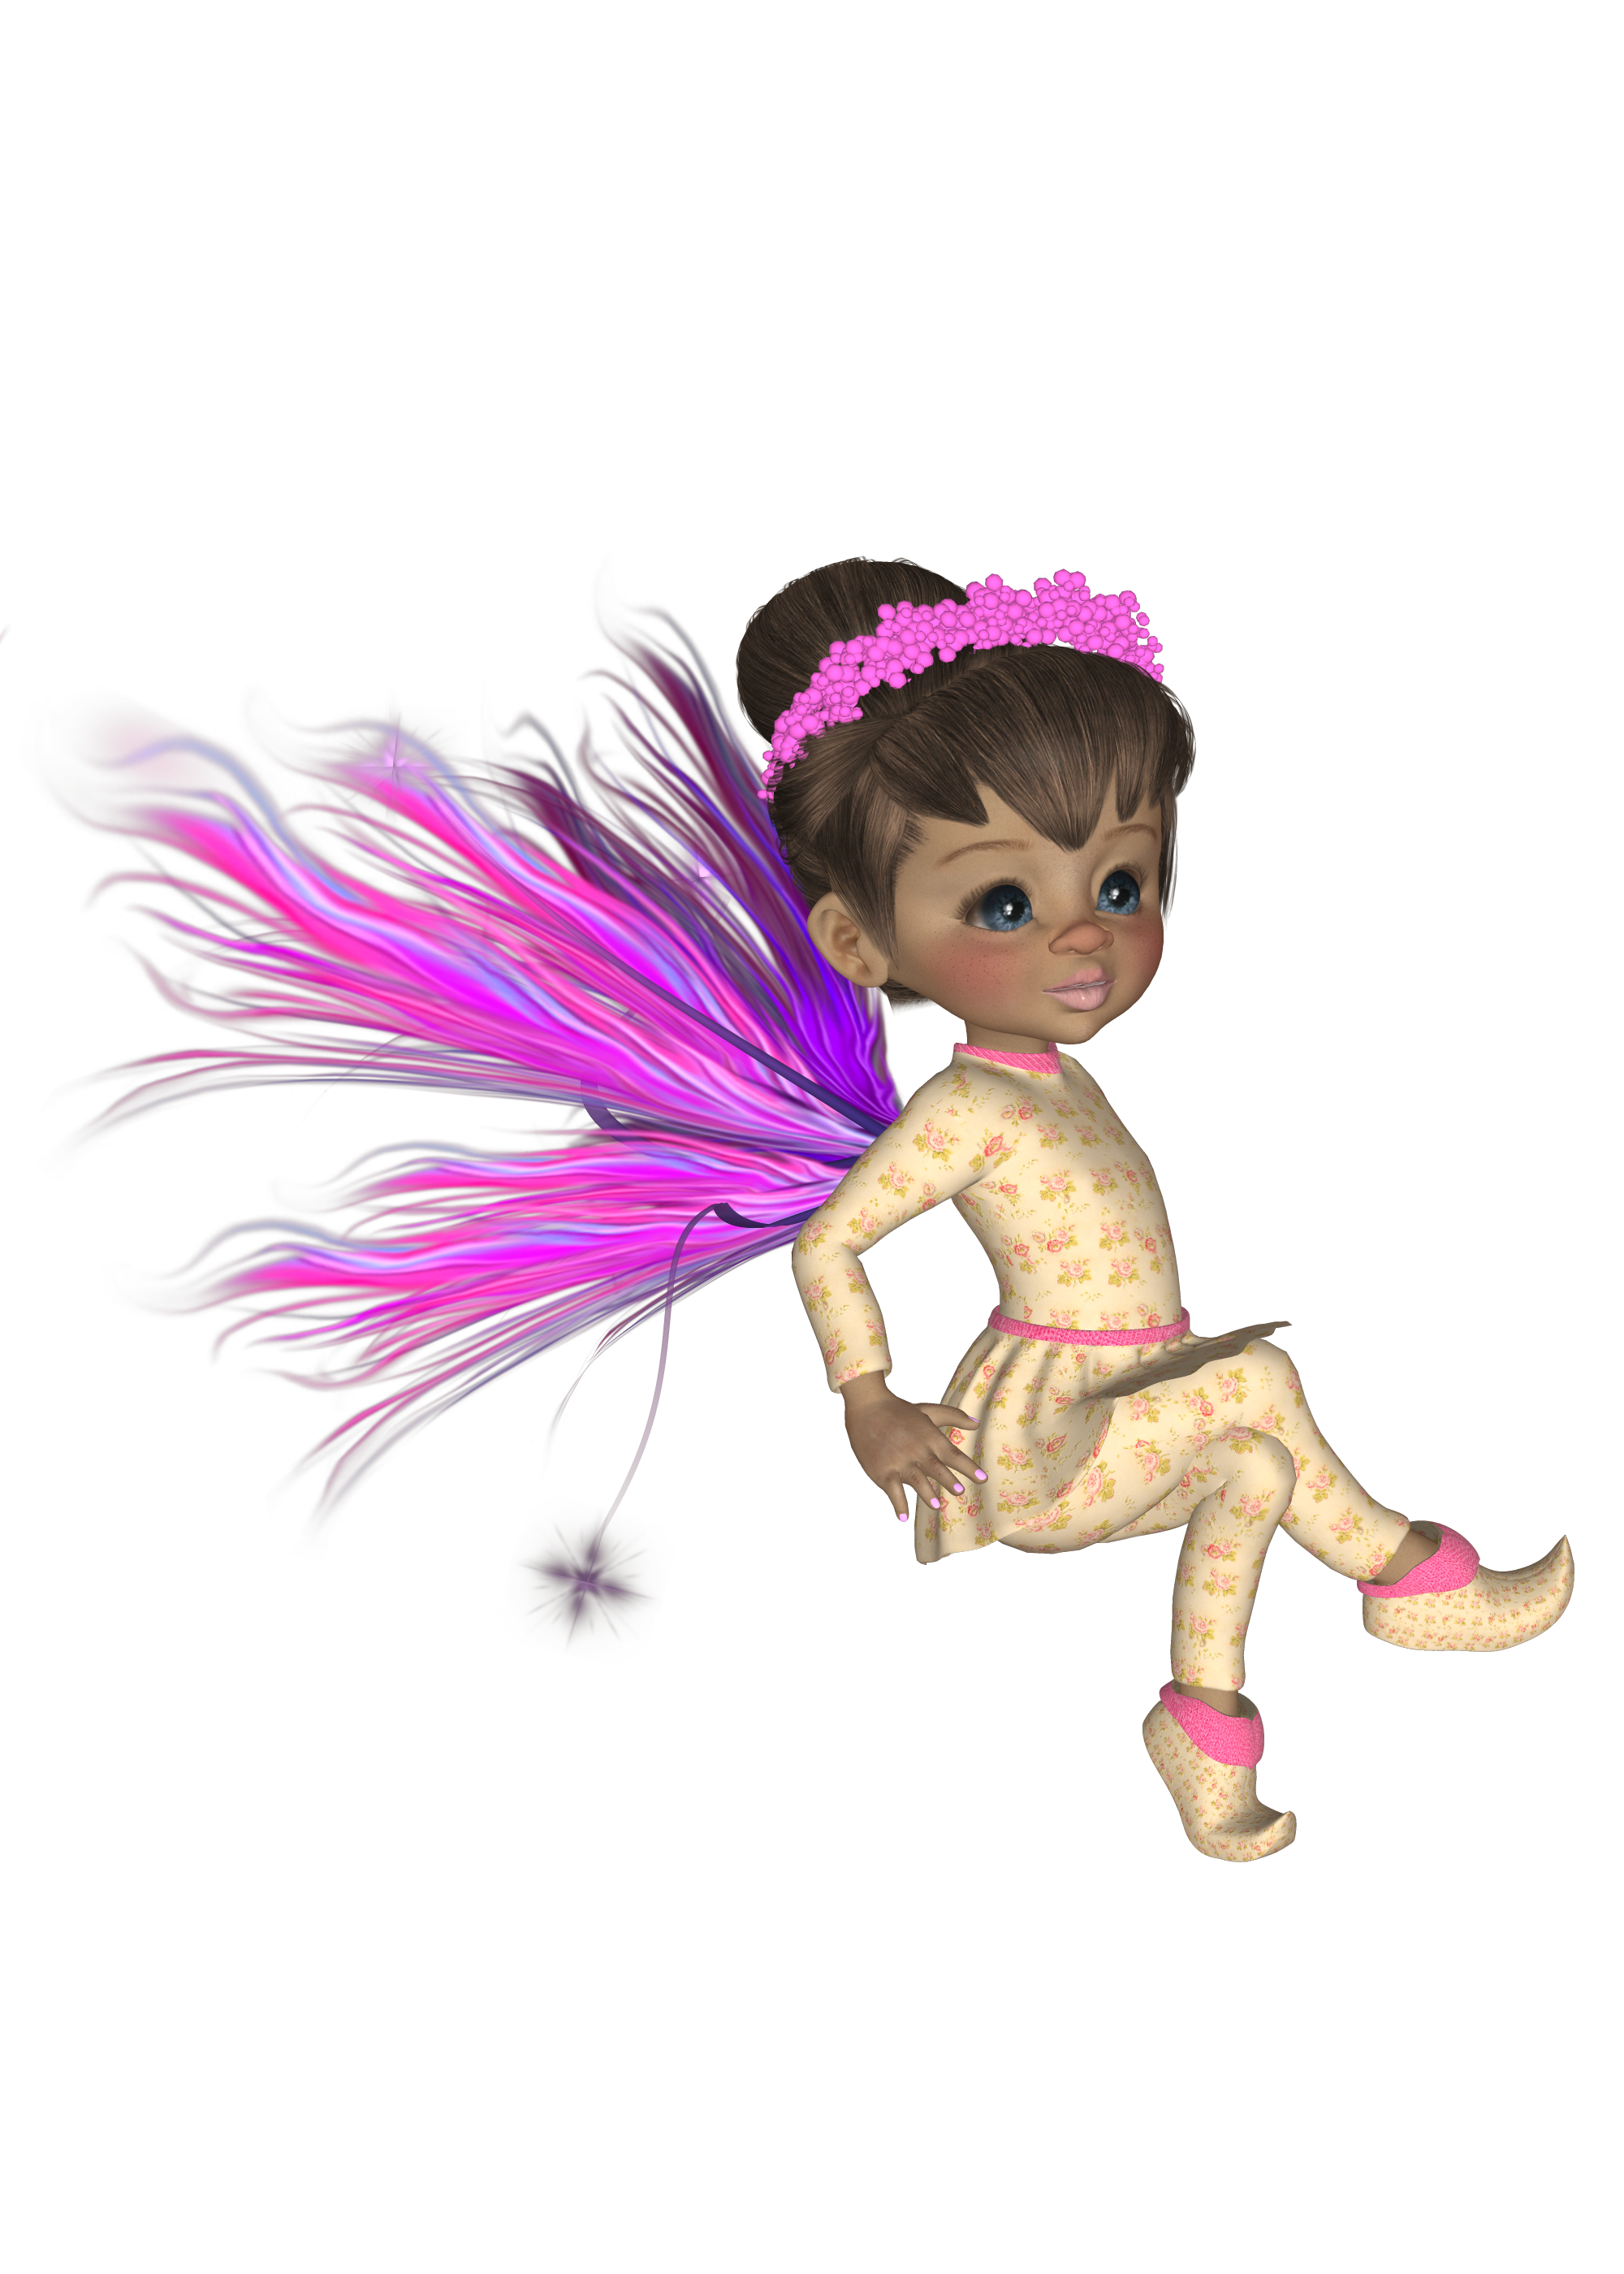 Faerie drawing elf. Pin by makayla on